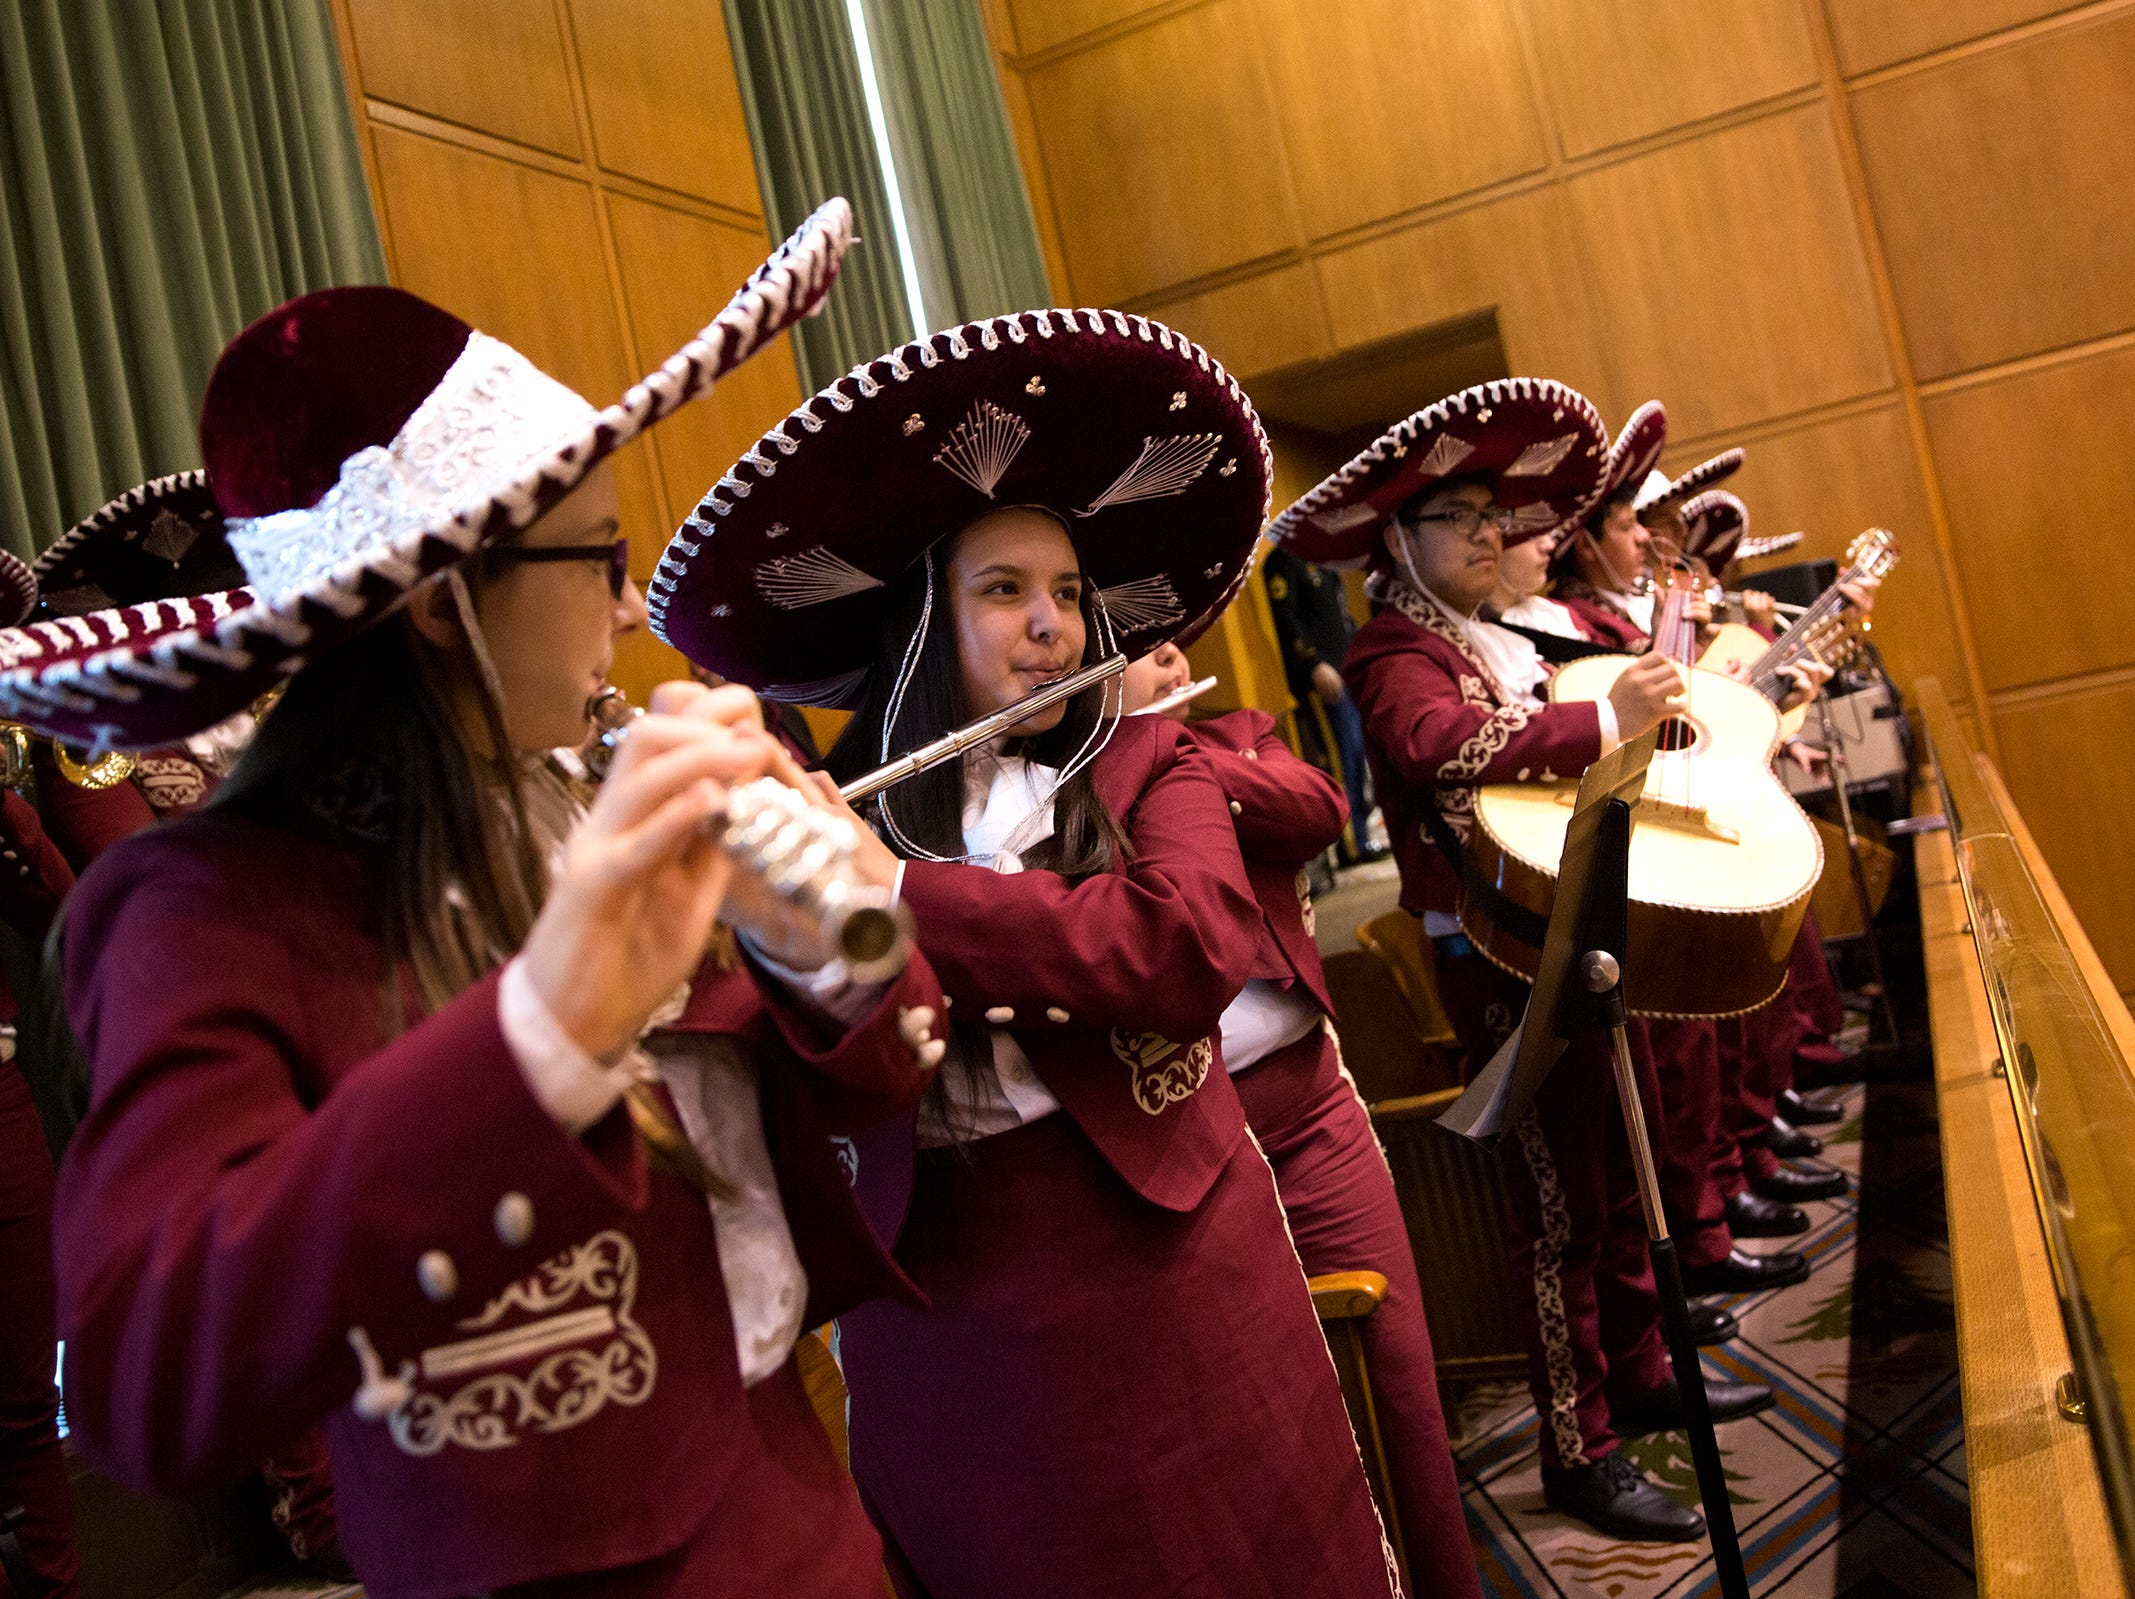 Woodburn High School Mariachi students perform following Governor Kate Brown's inaugural address at the Oregon State Capitol on Jan. 14, 2019.